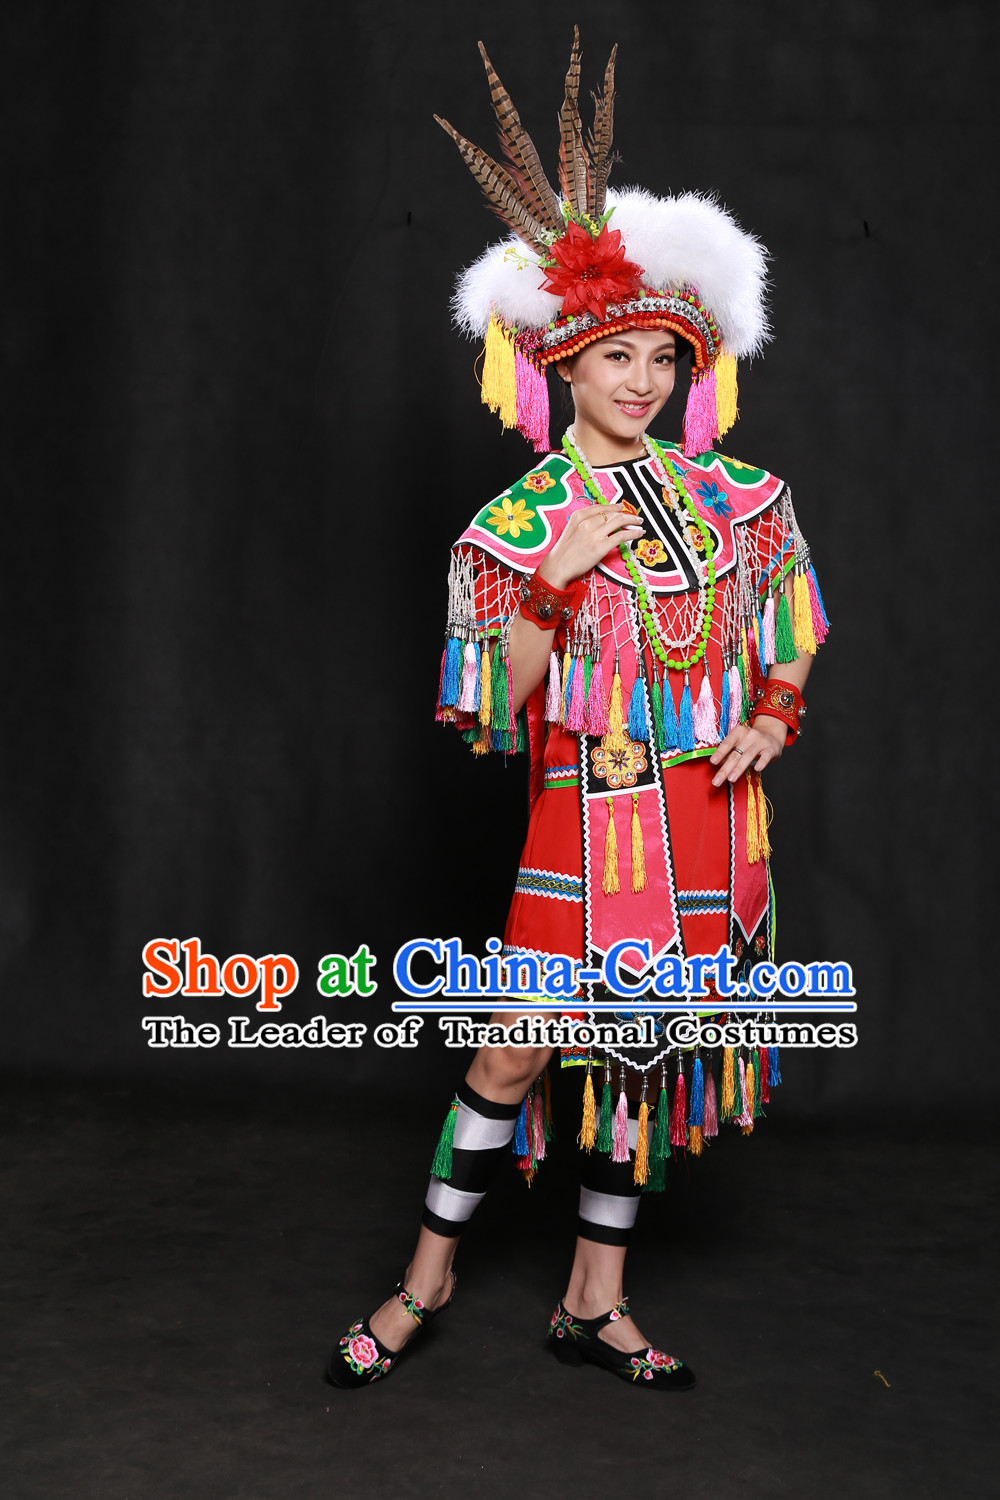 Happy Festival Chinese Minority Dress Taiwan Uniform Traditional Stage Ethnic National Costume Sale Complete Set